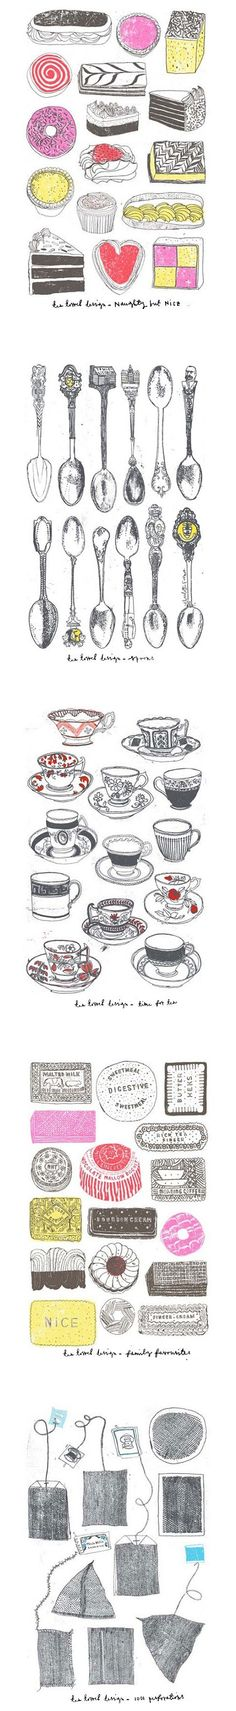 Tea towel designs by Charlotte Farmer